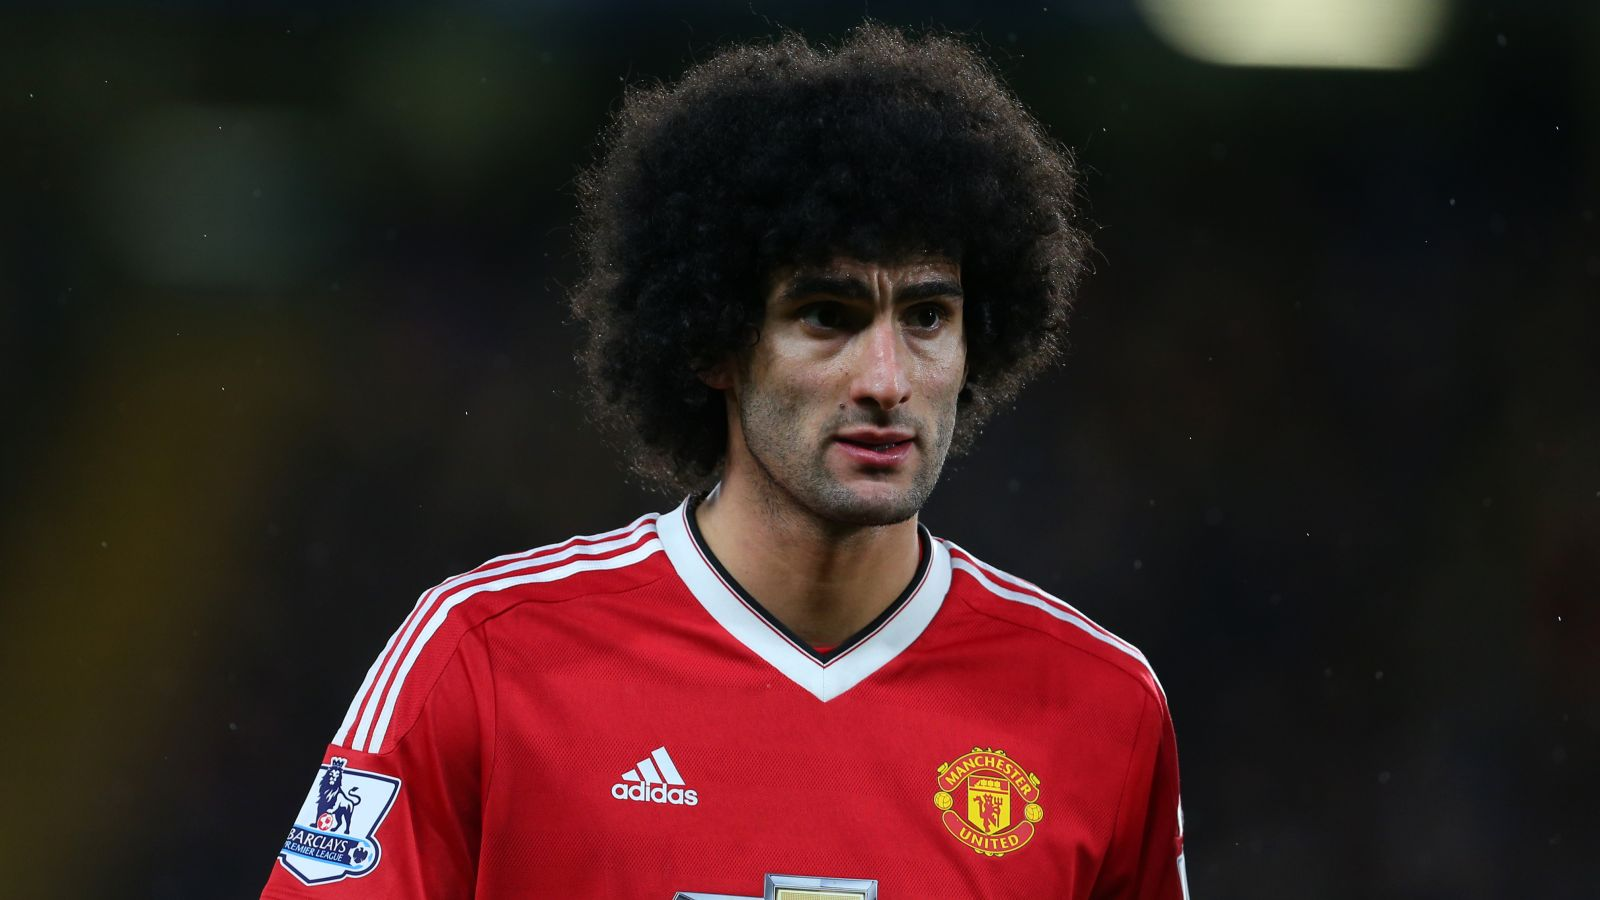 United's Fellaini escapes UEFA action over alleged elbow